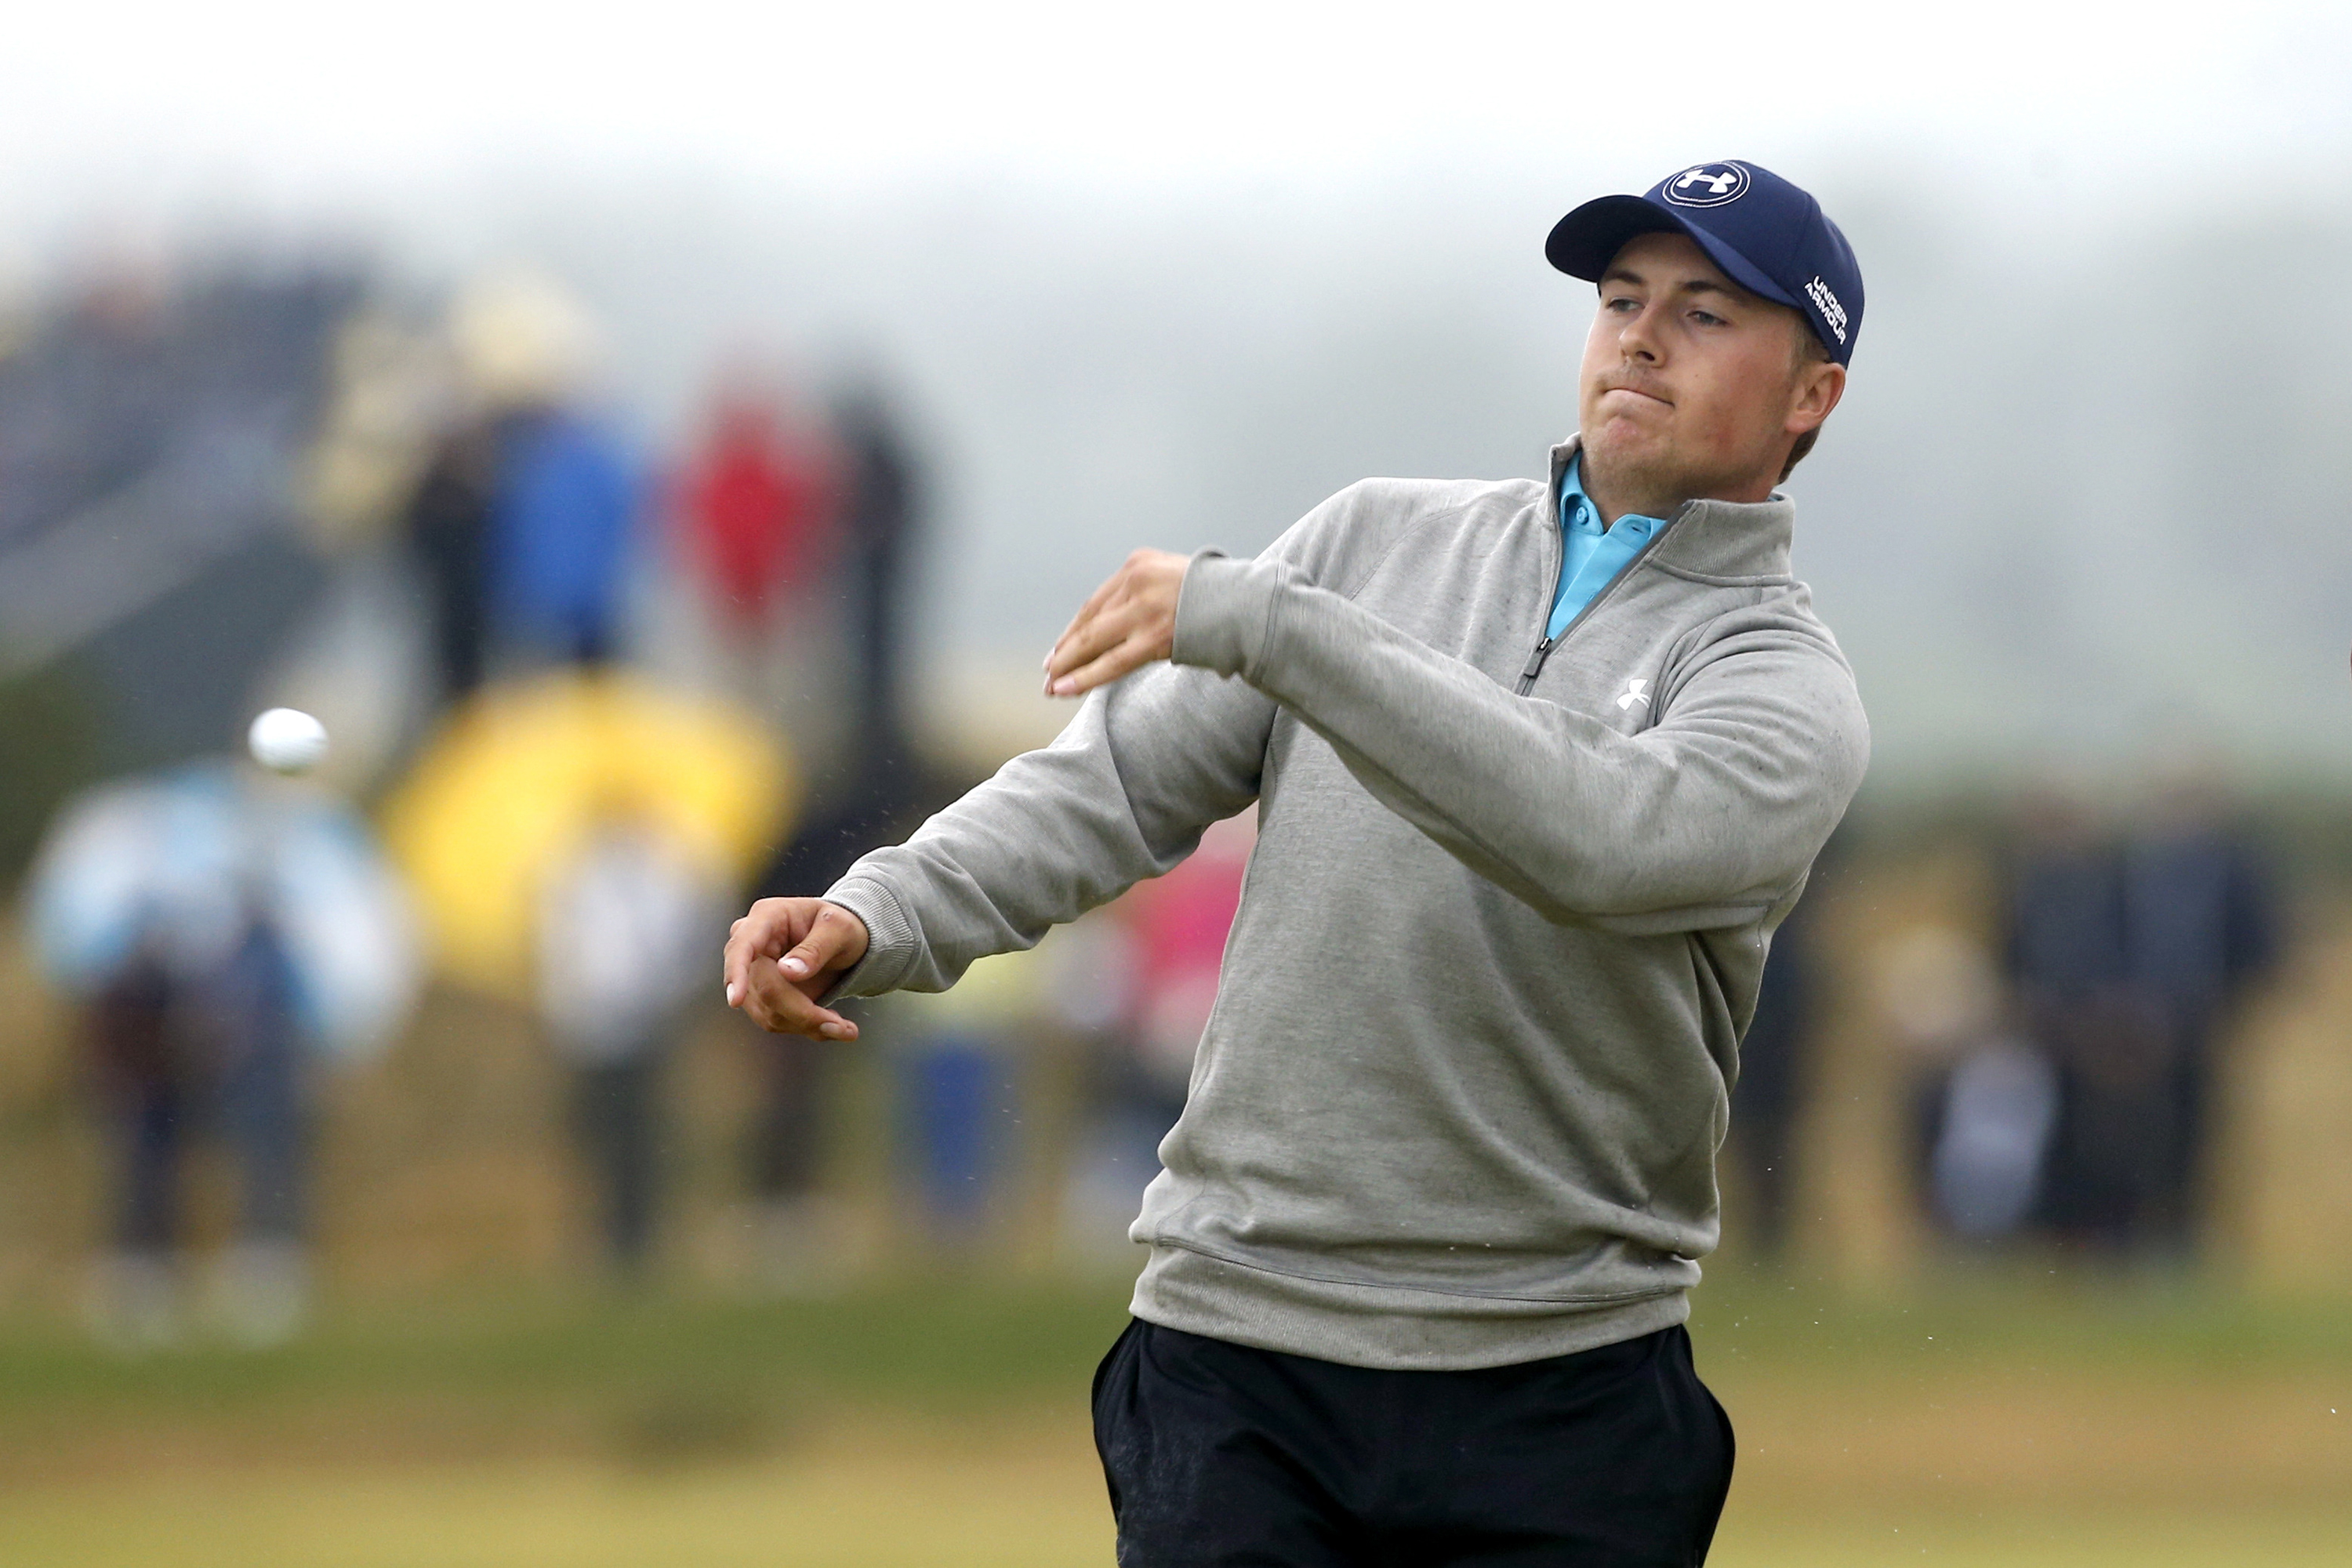 Jordan Spieth reacts to his double bogey on the eighth hole during Monday's final round of the British Open. Spieth finished one stroke out of the three-man playoff won by Zach Johnson.